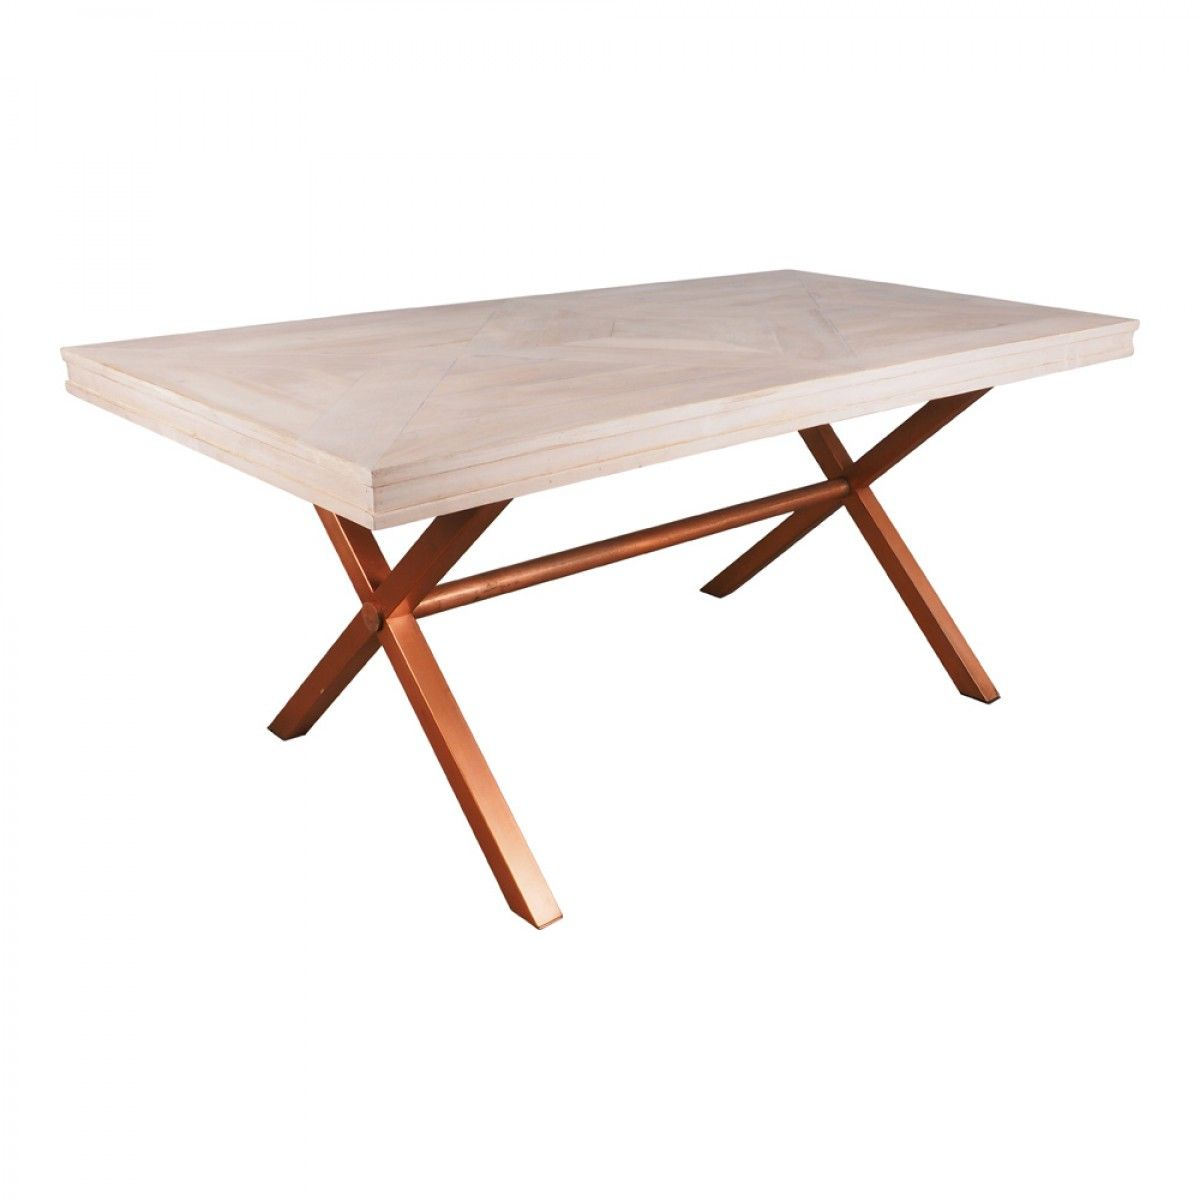 Croxley Dining Table 6 Seater 1820 x 910mm early settler 899